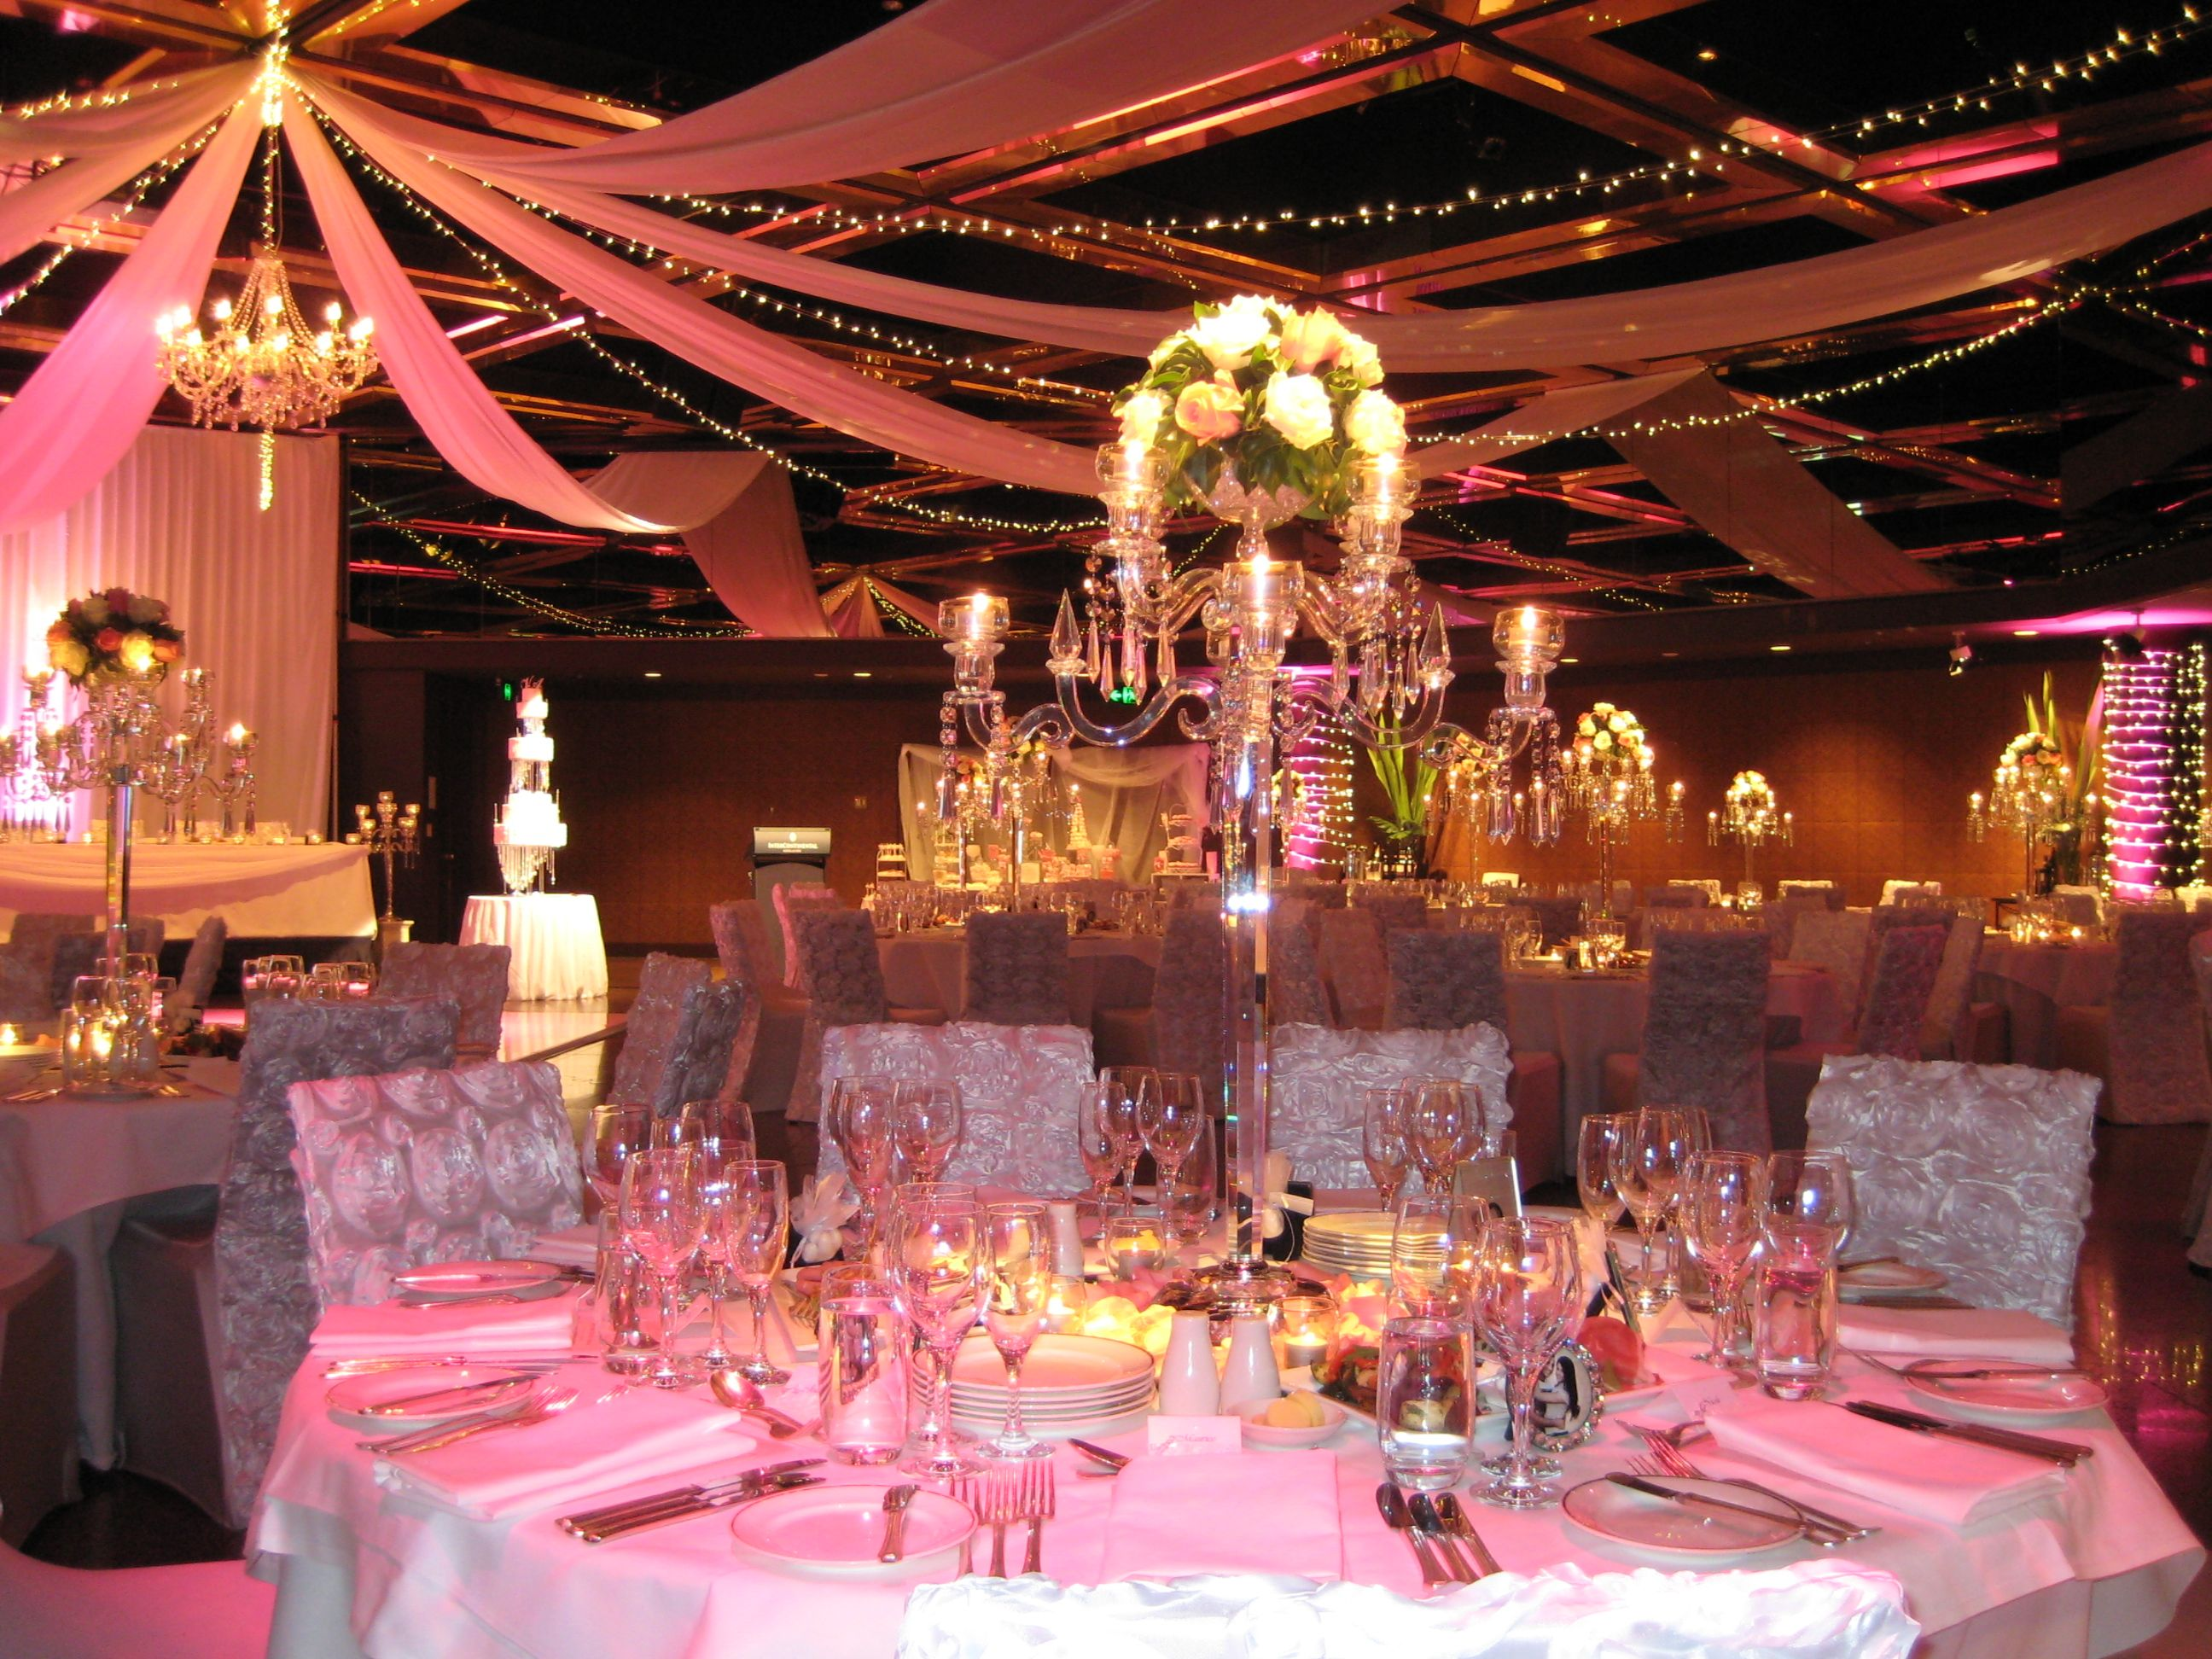 Intercontinental adelaide ballroom pink and white theme with intercontinental adelaide ballroom pink and white theme with ceiling swagging junglespirit Image collections